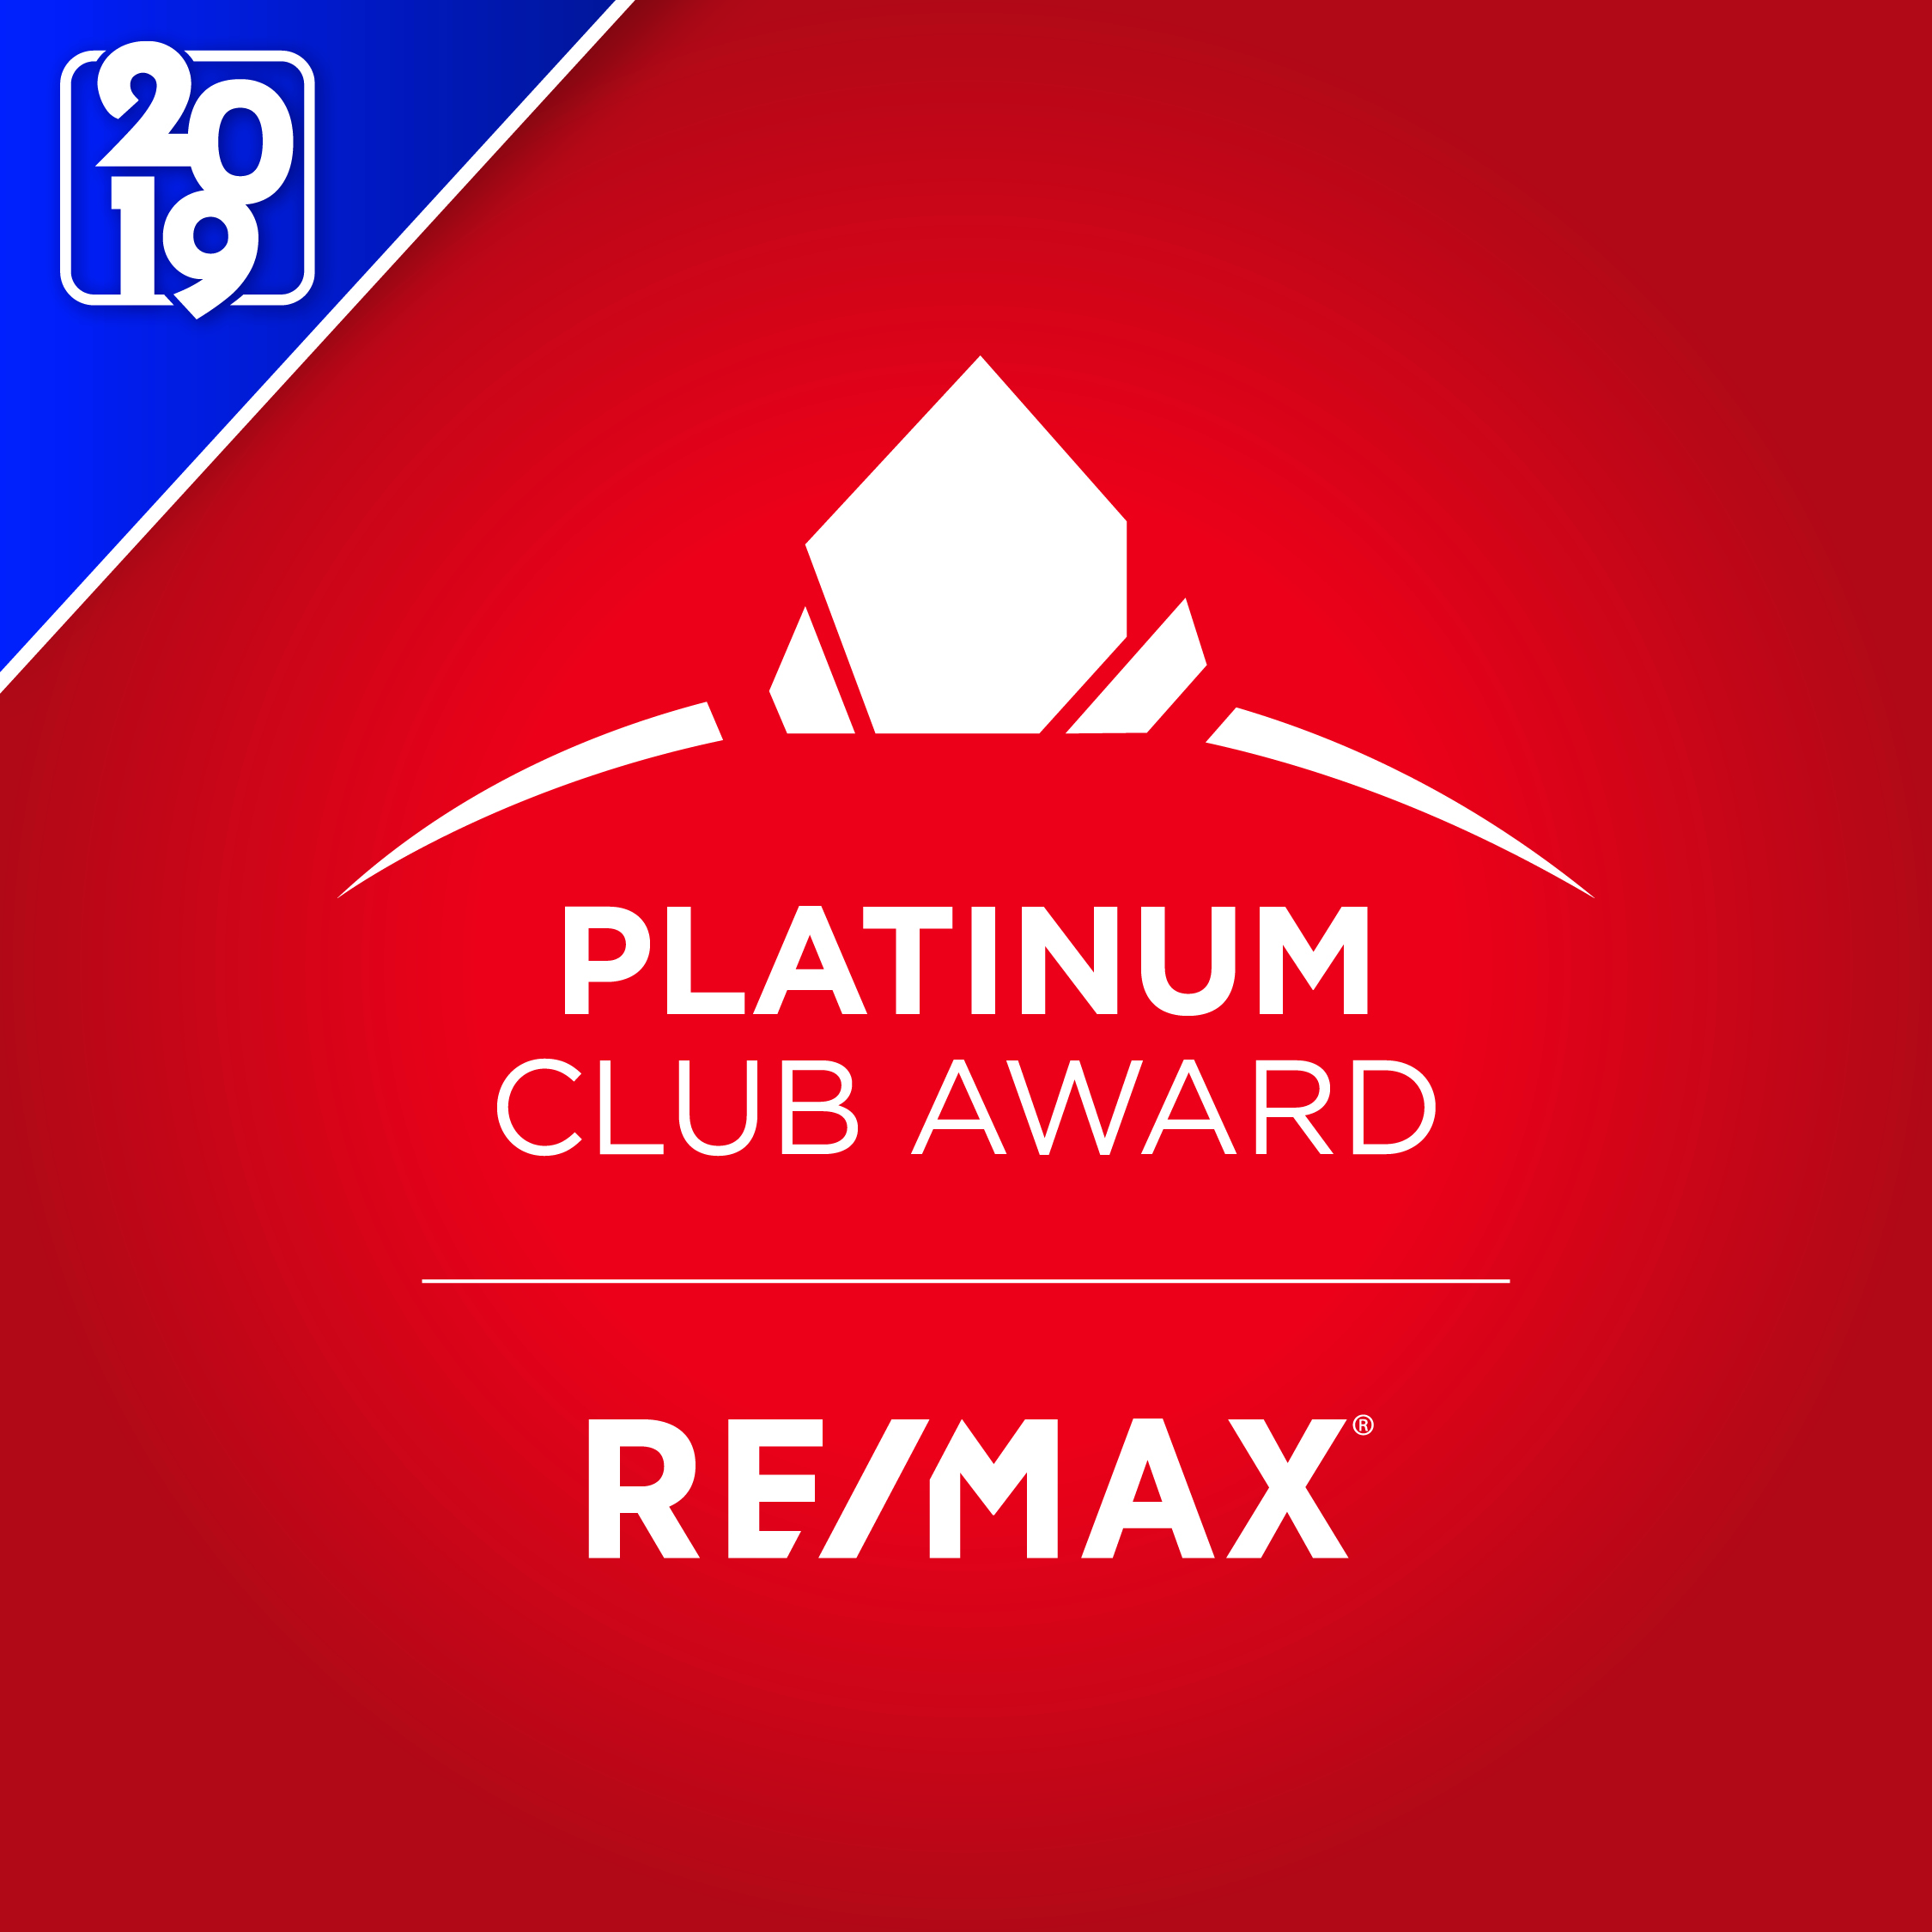 RE/MAX Platinum Club image